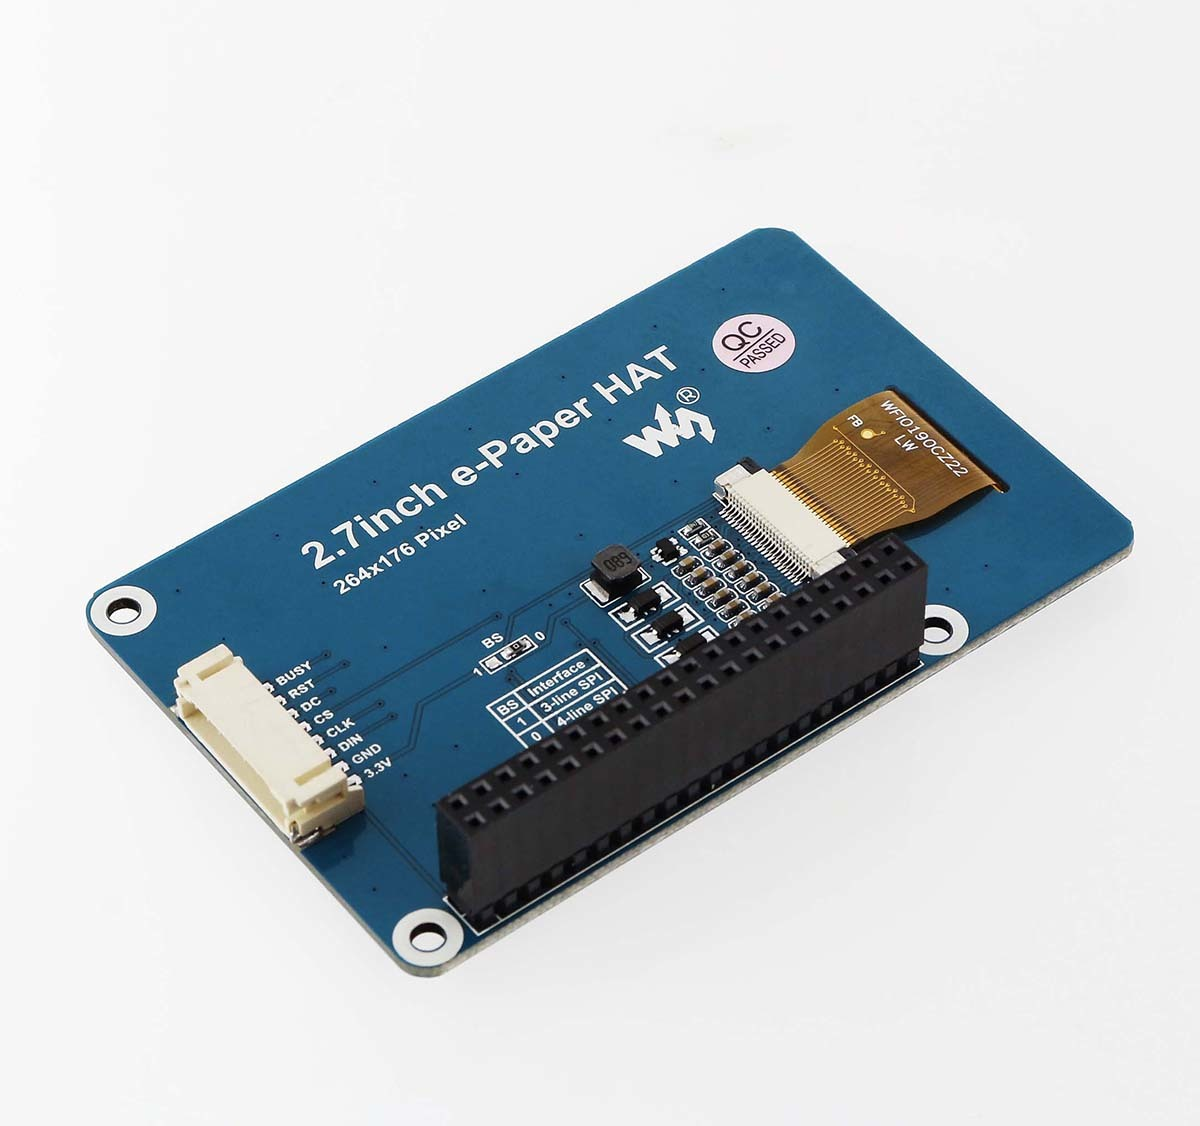 264x176 2.7inch E-Ink display HAT for Raspberry Pi red black white SPI interface